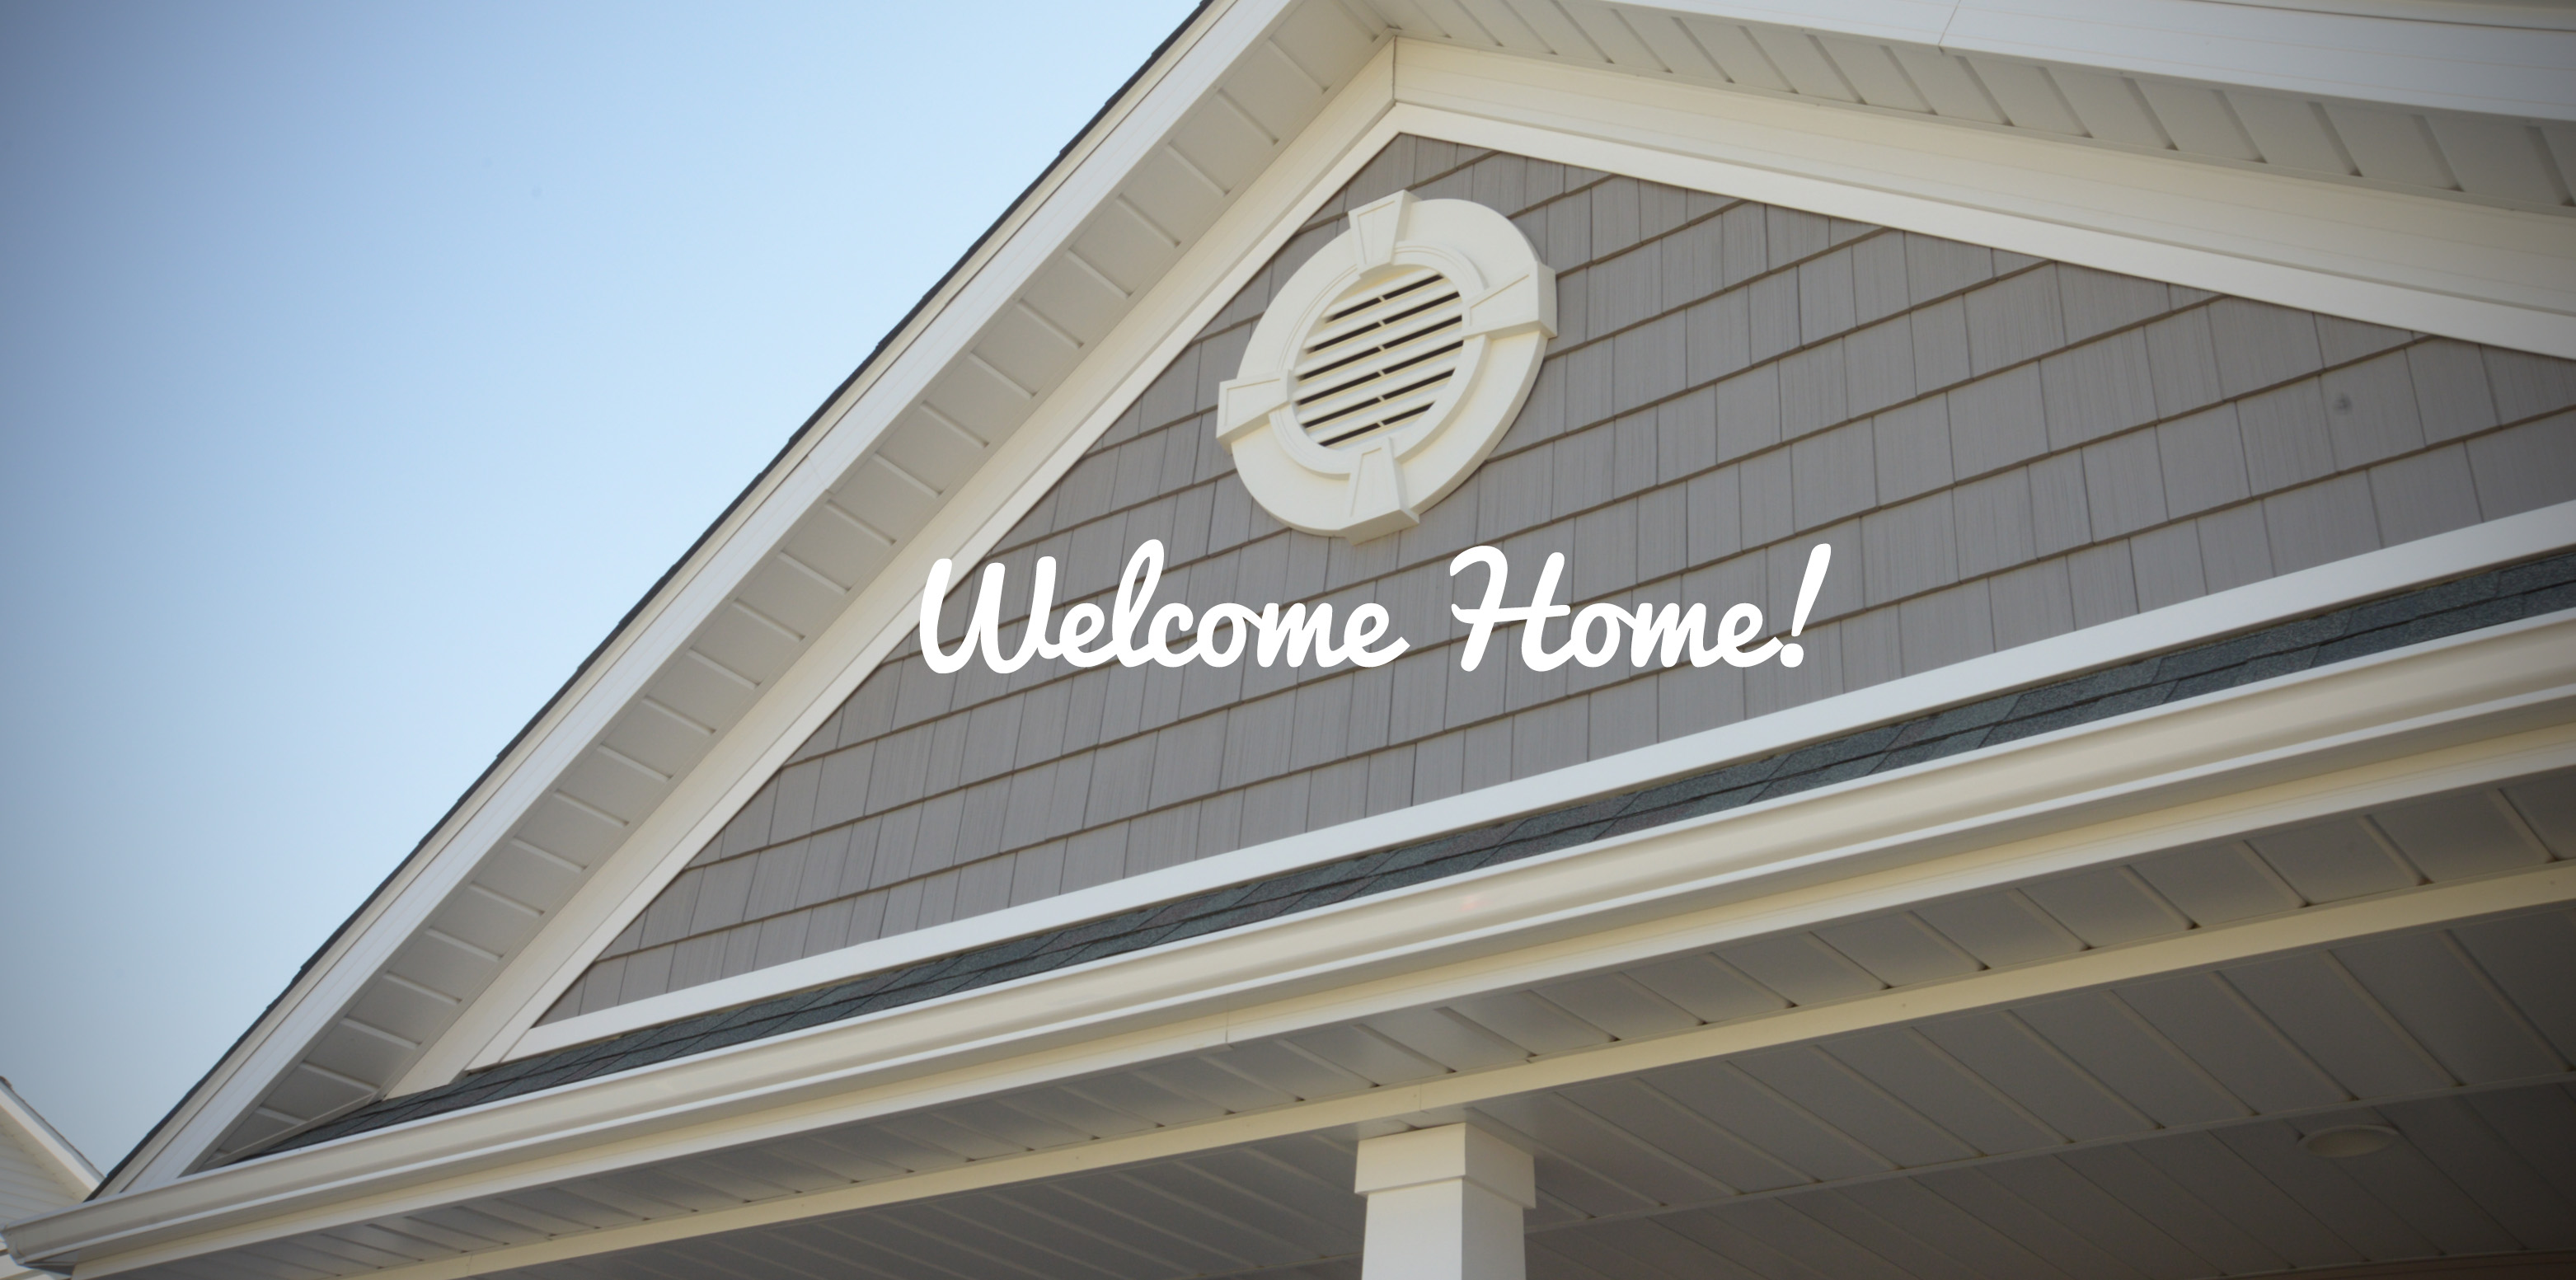 WelcomeHome_slide